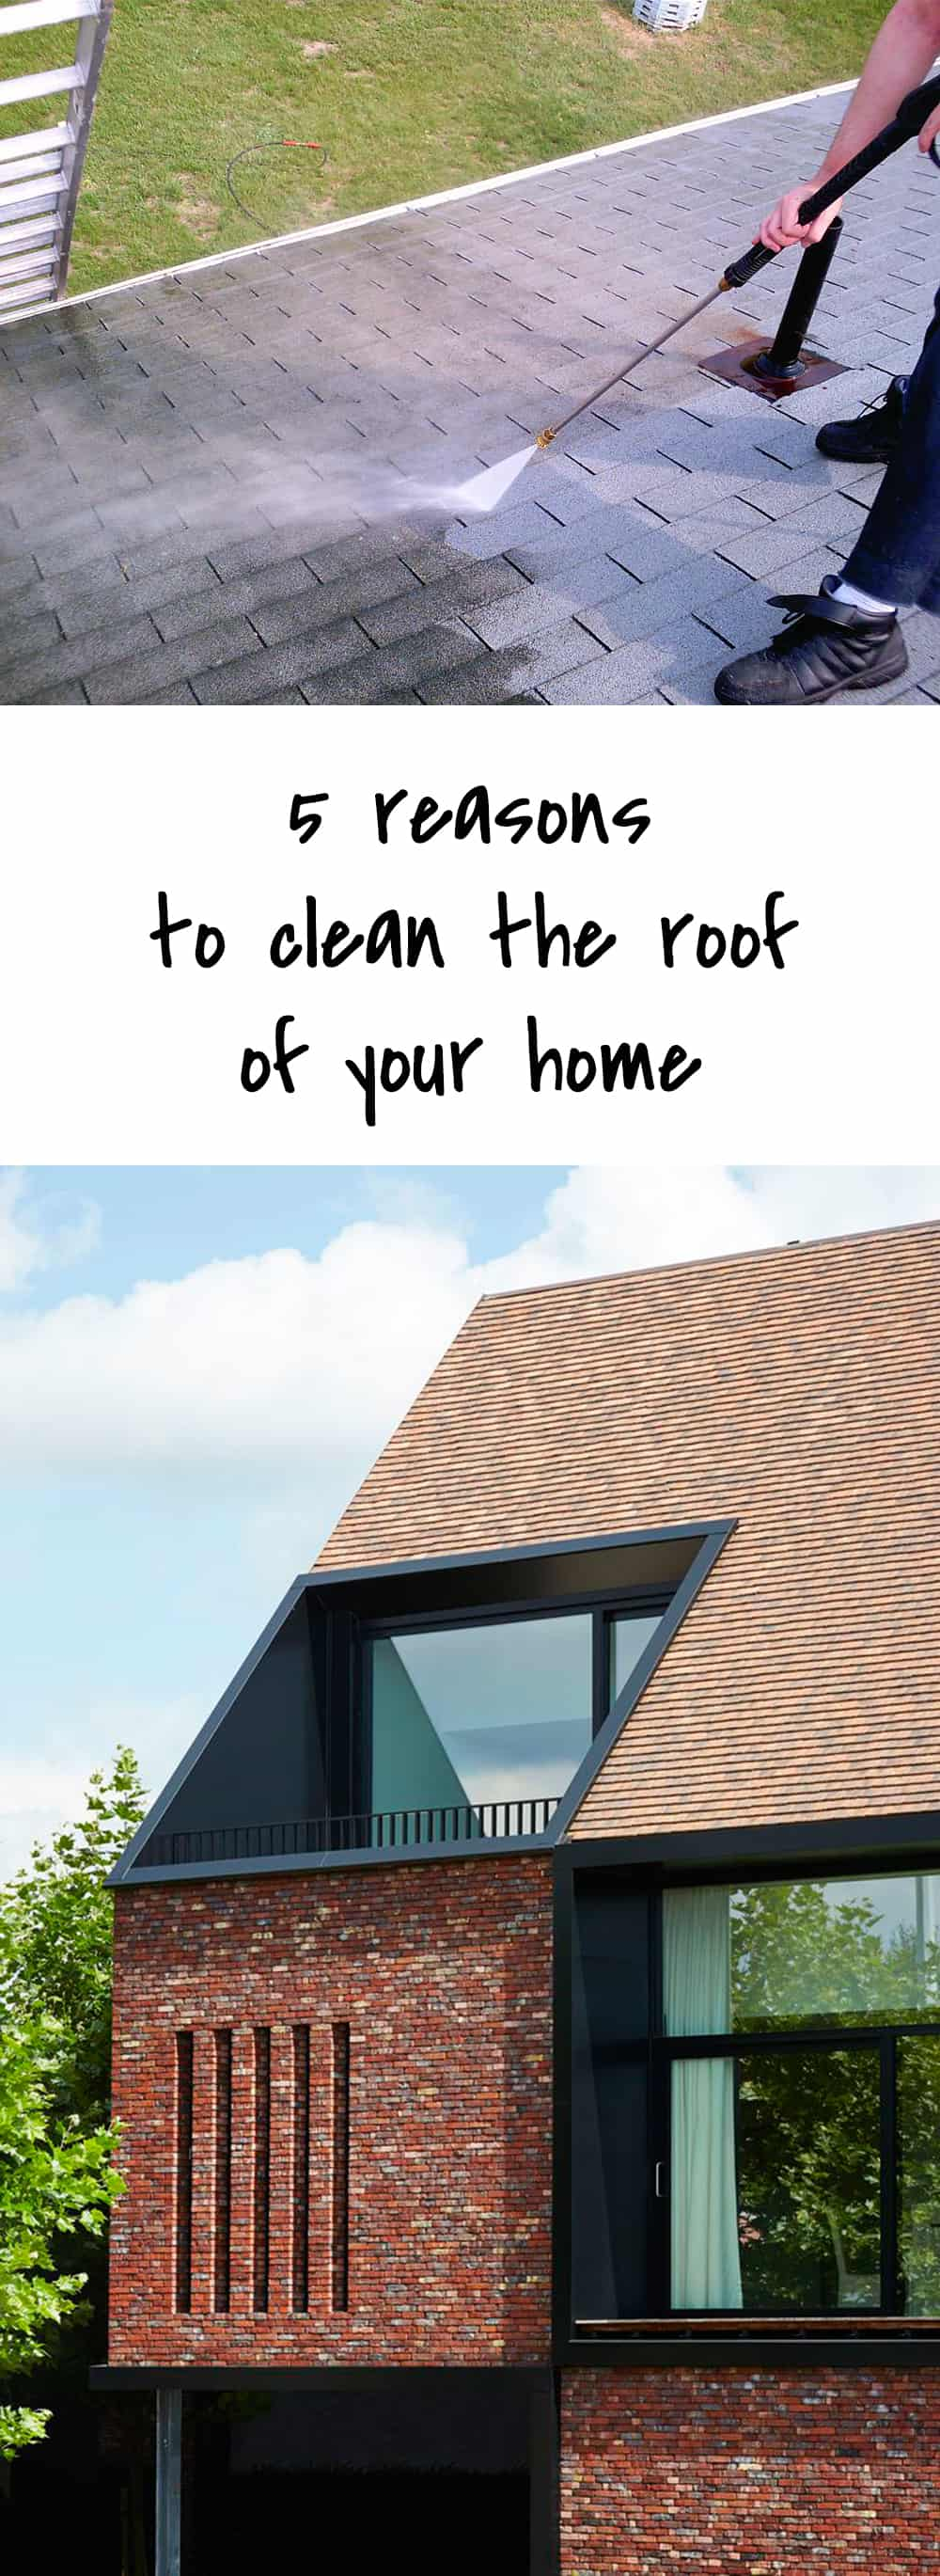 5 reasons to clean the roof of your home ohoh blog - Reasons get roof cleaned ...